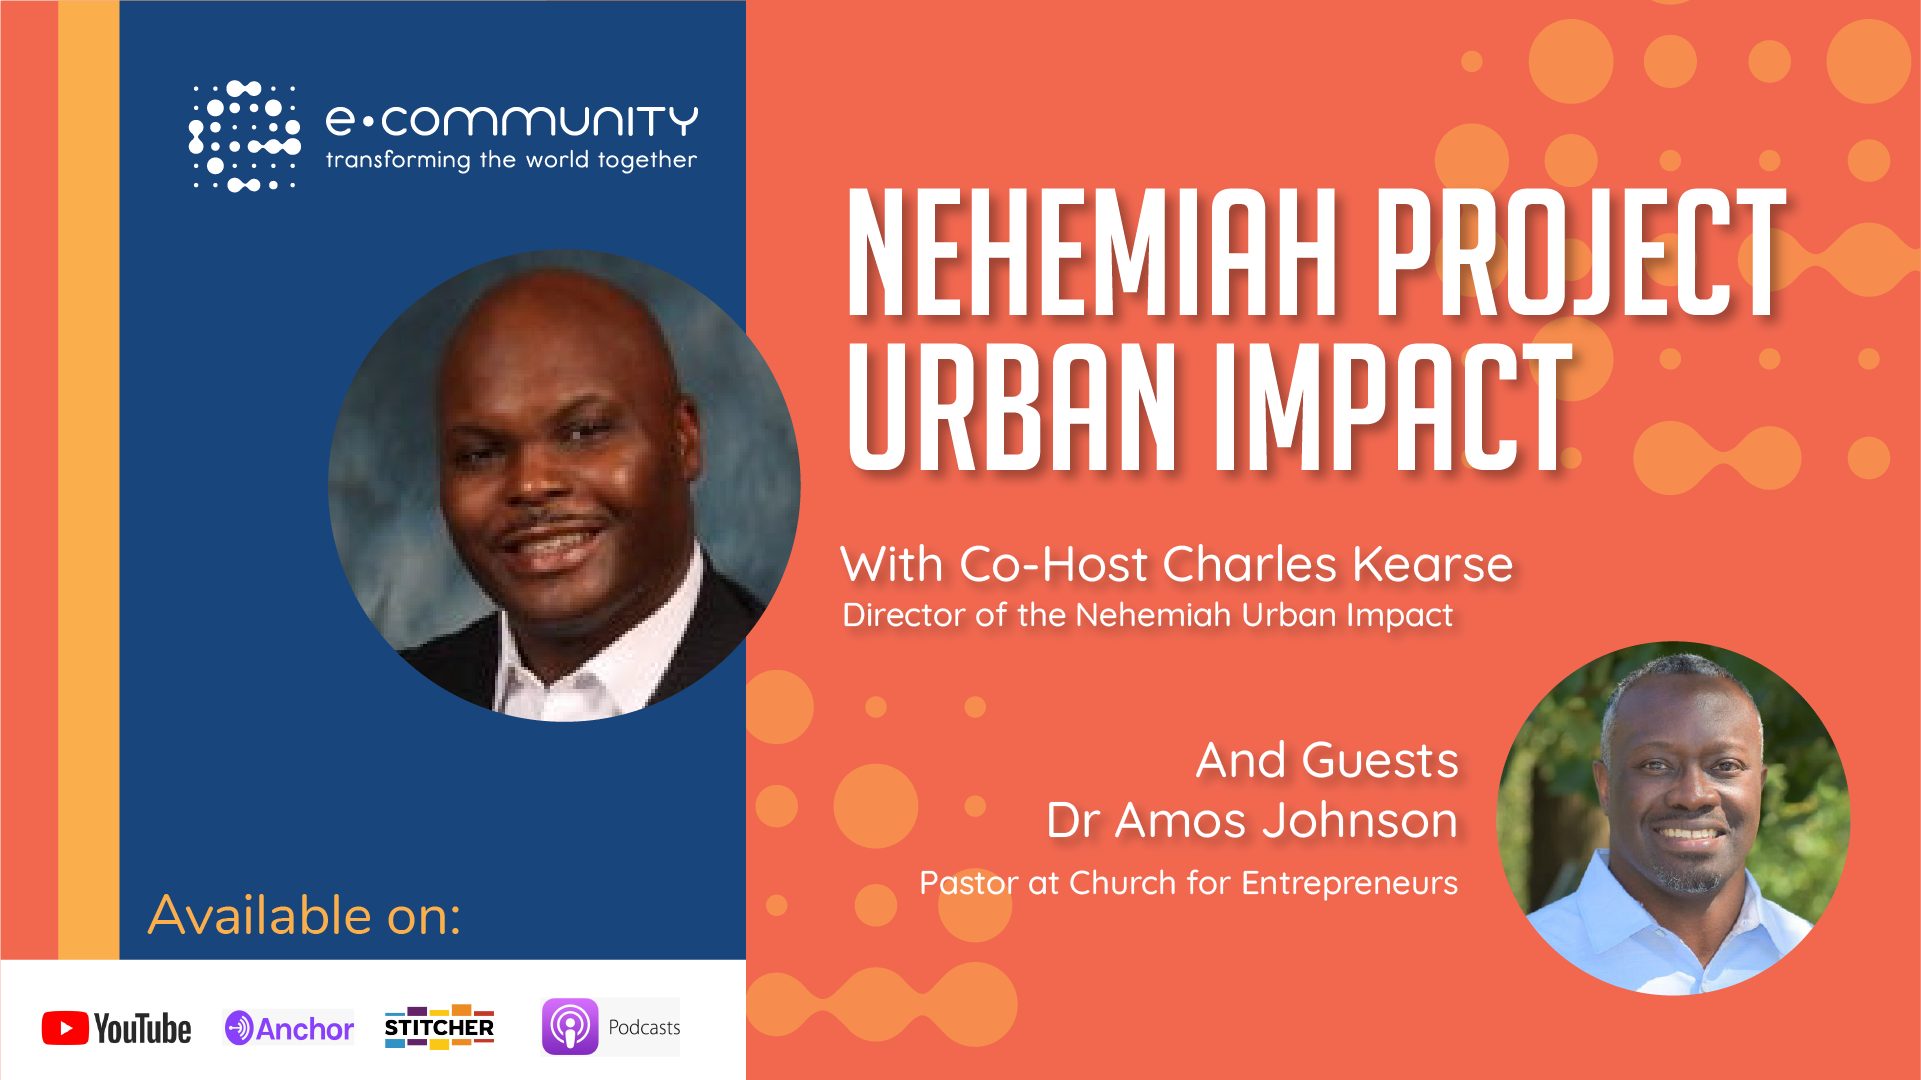 Nehemiah Project Urban Impact